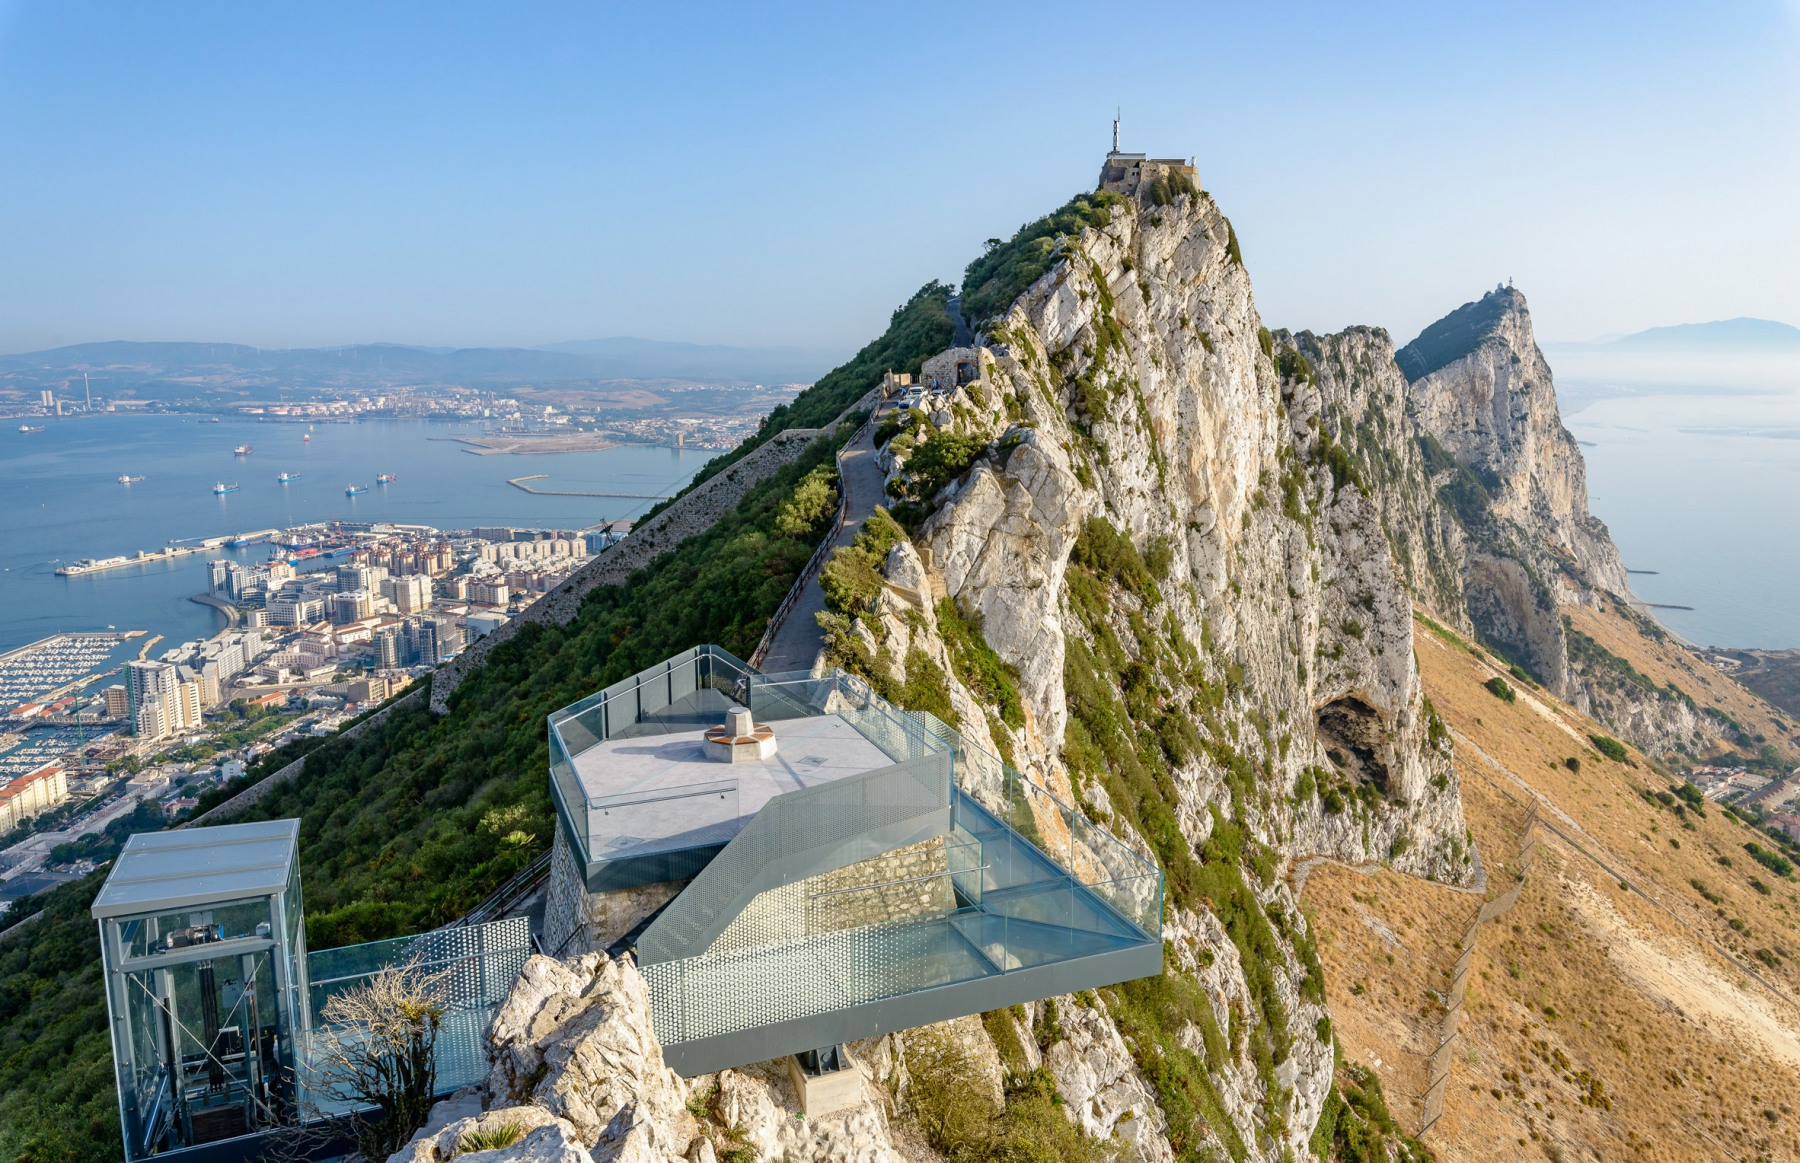 skywalk-gibraltar-2-photo-taken-for-bovis-koala-jv-by-meteogibs-photographer-stephen-ball_41367549160_o